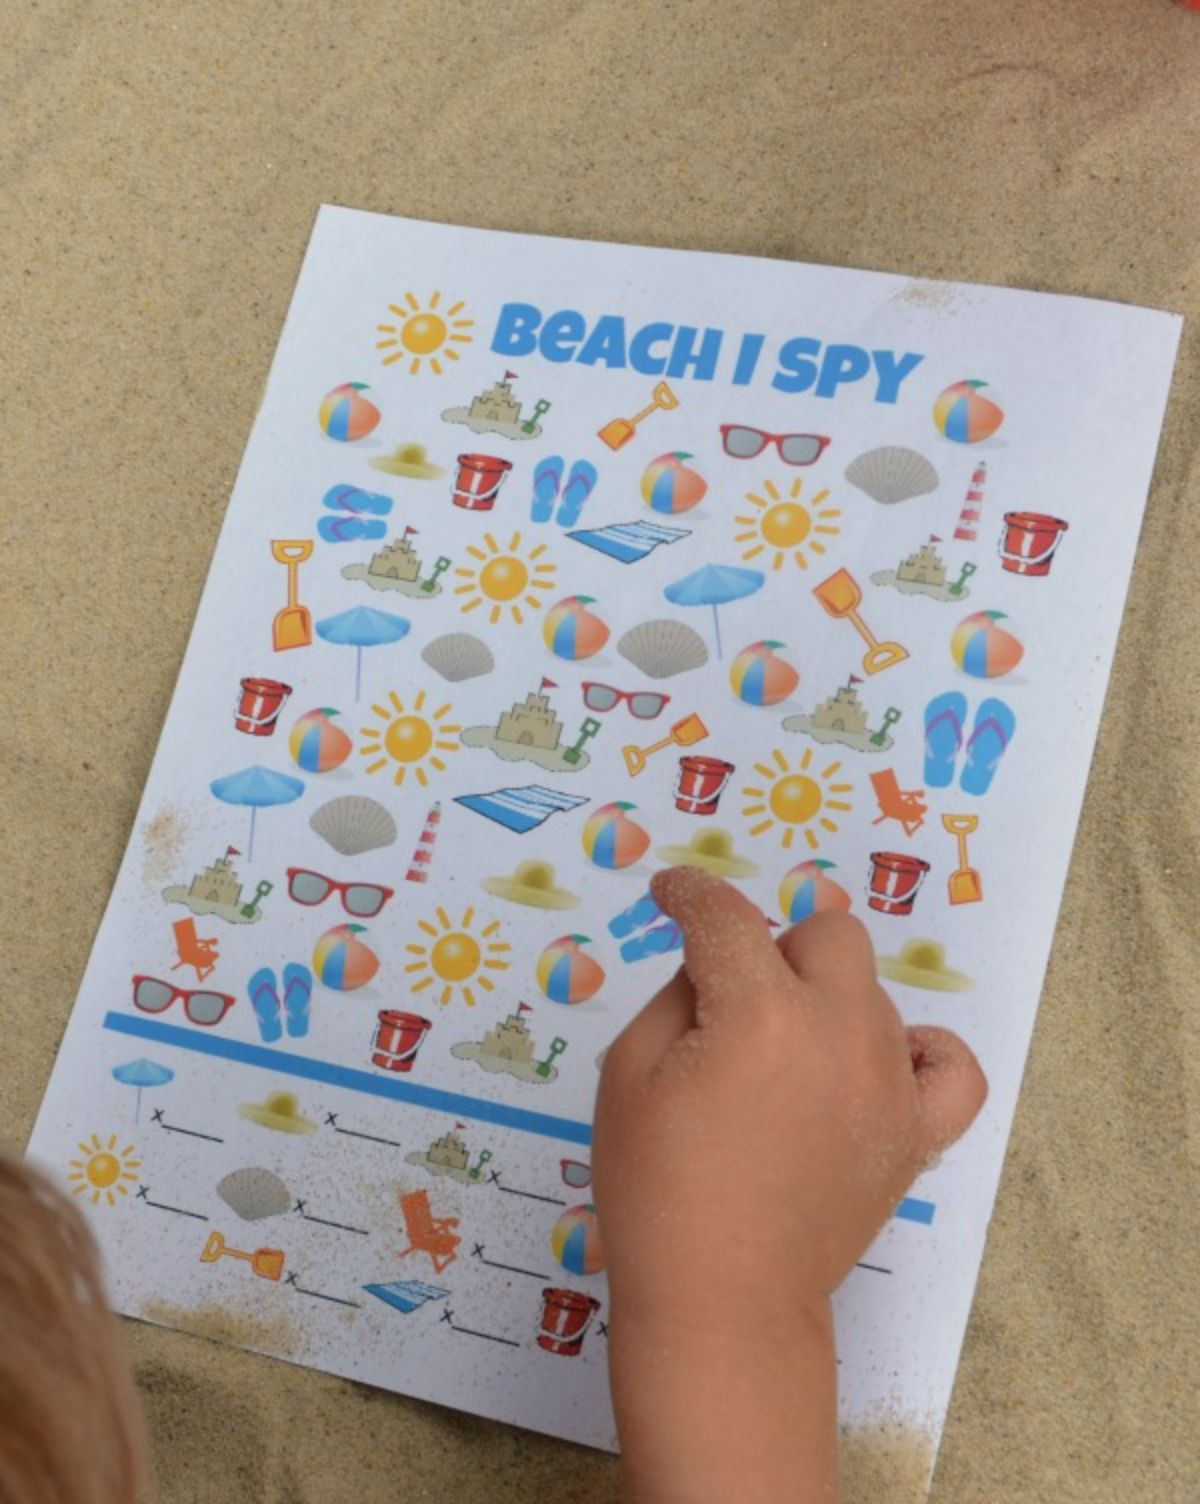 a hand points at a beach ispy sheet on the sand